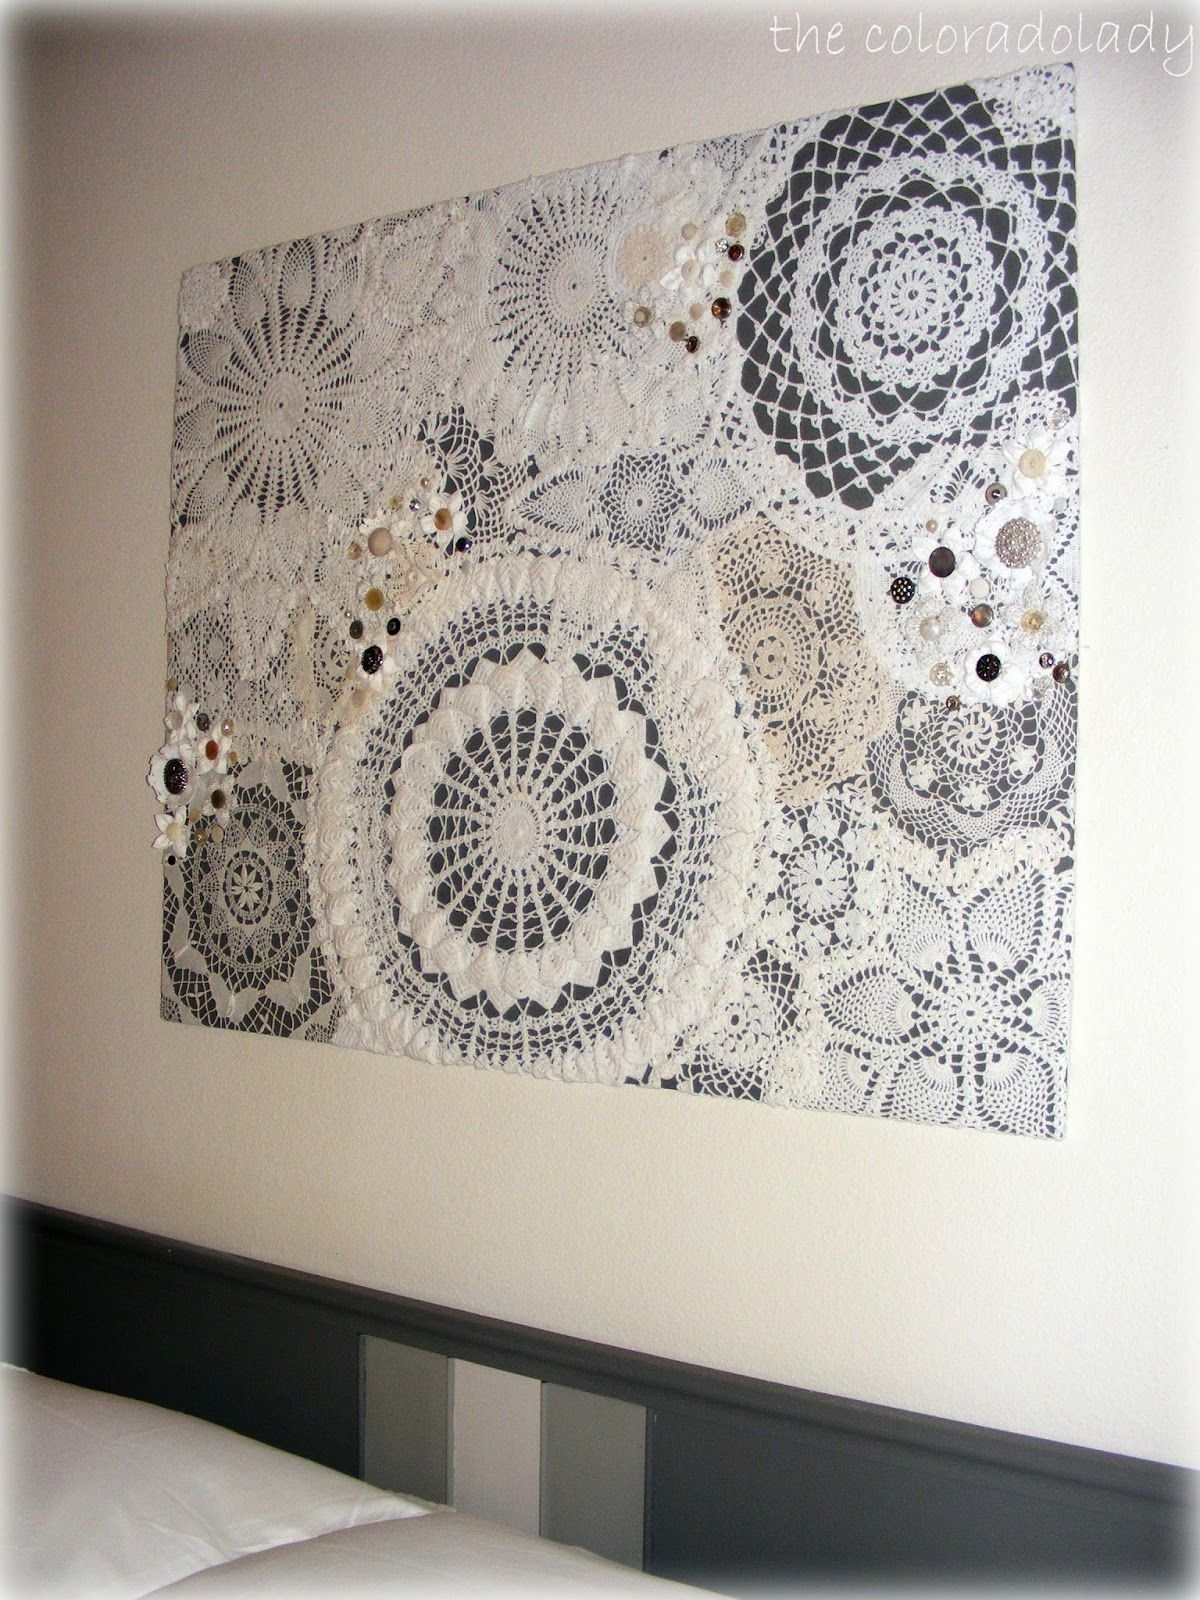 Diy Doily Craft Ideas | My Style | Pinterest | Doilies Crafts, Walls With Regard To Best And Newest Crochet Wall Art (Gallery 5 of 20)